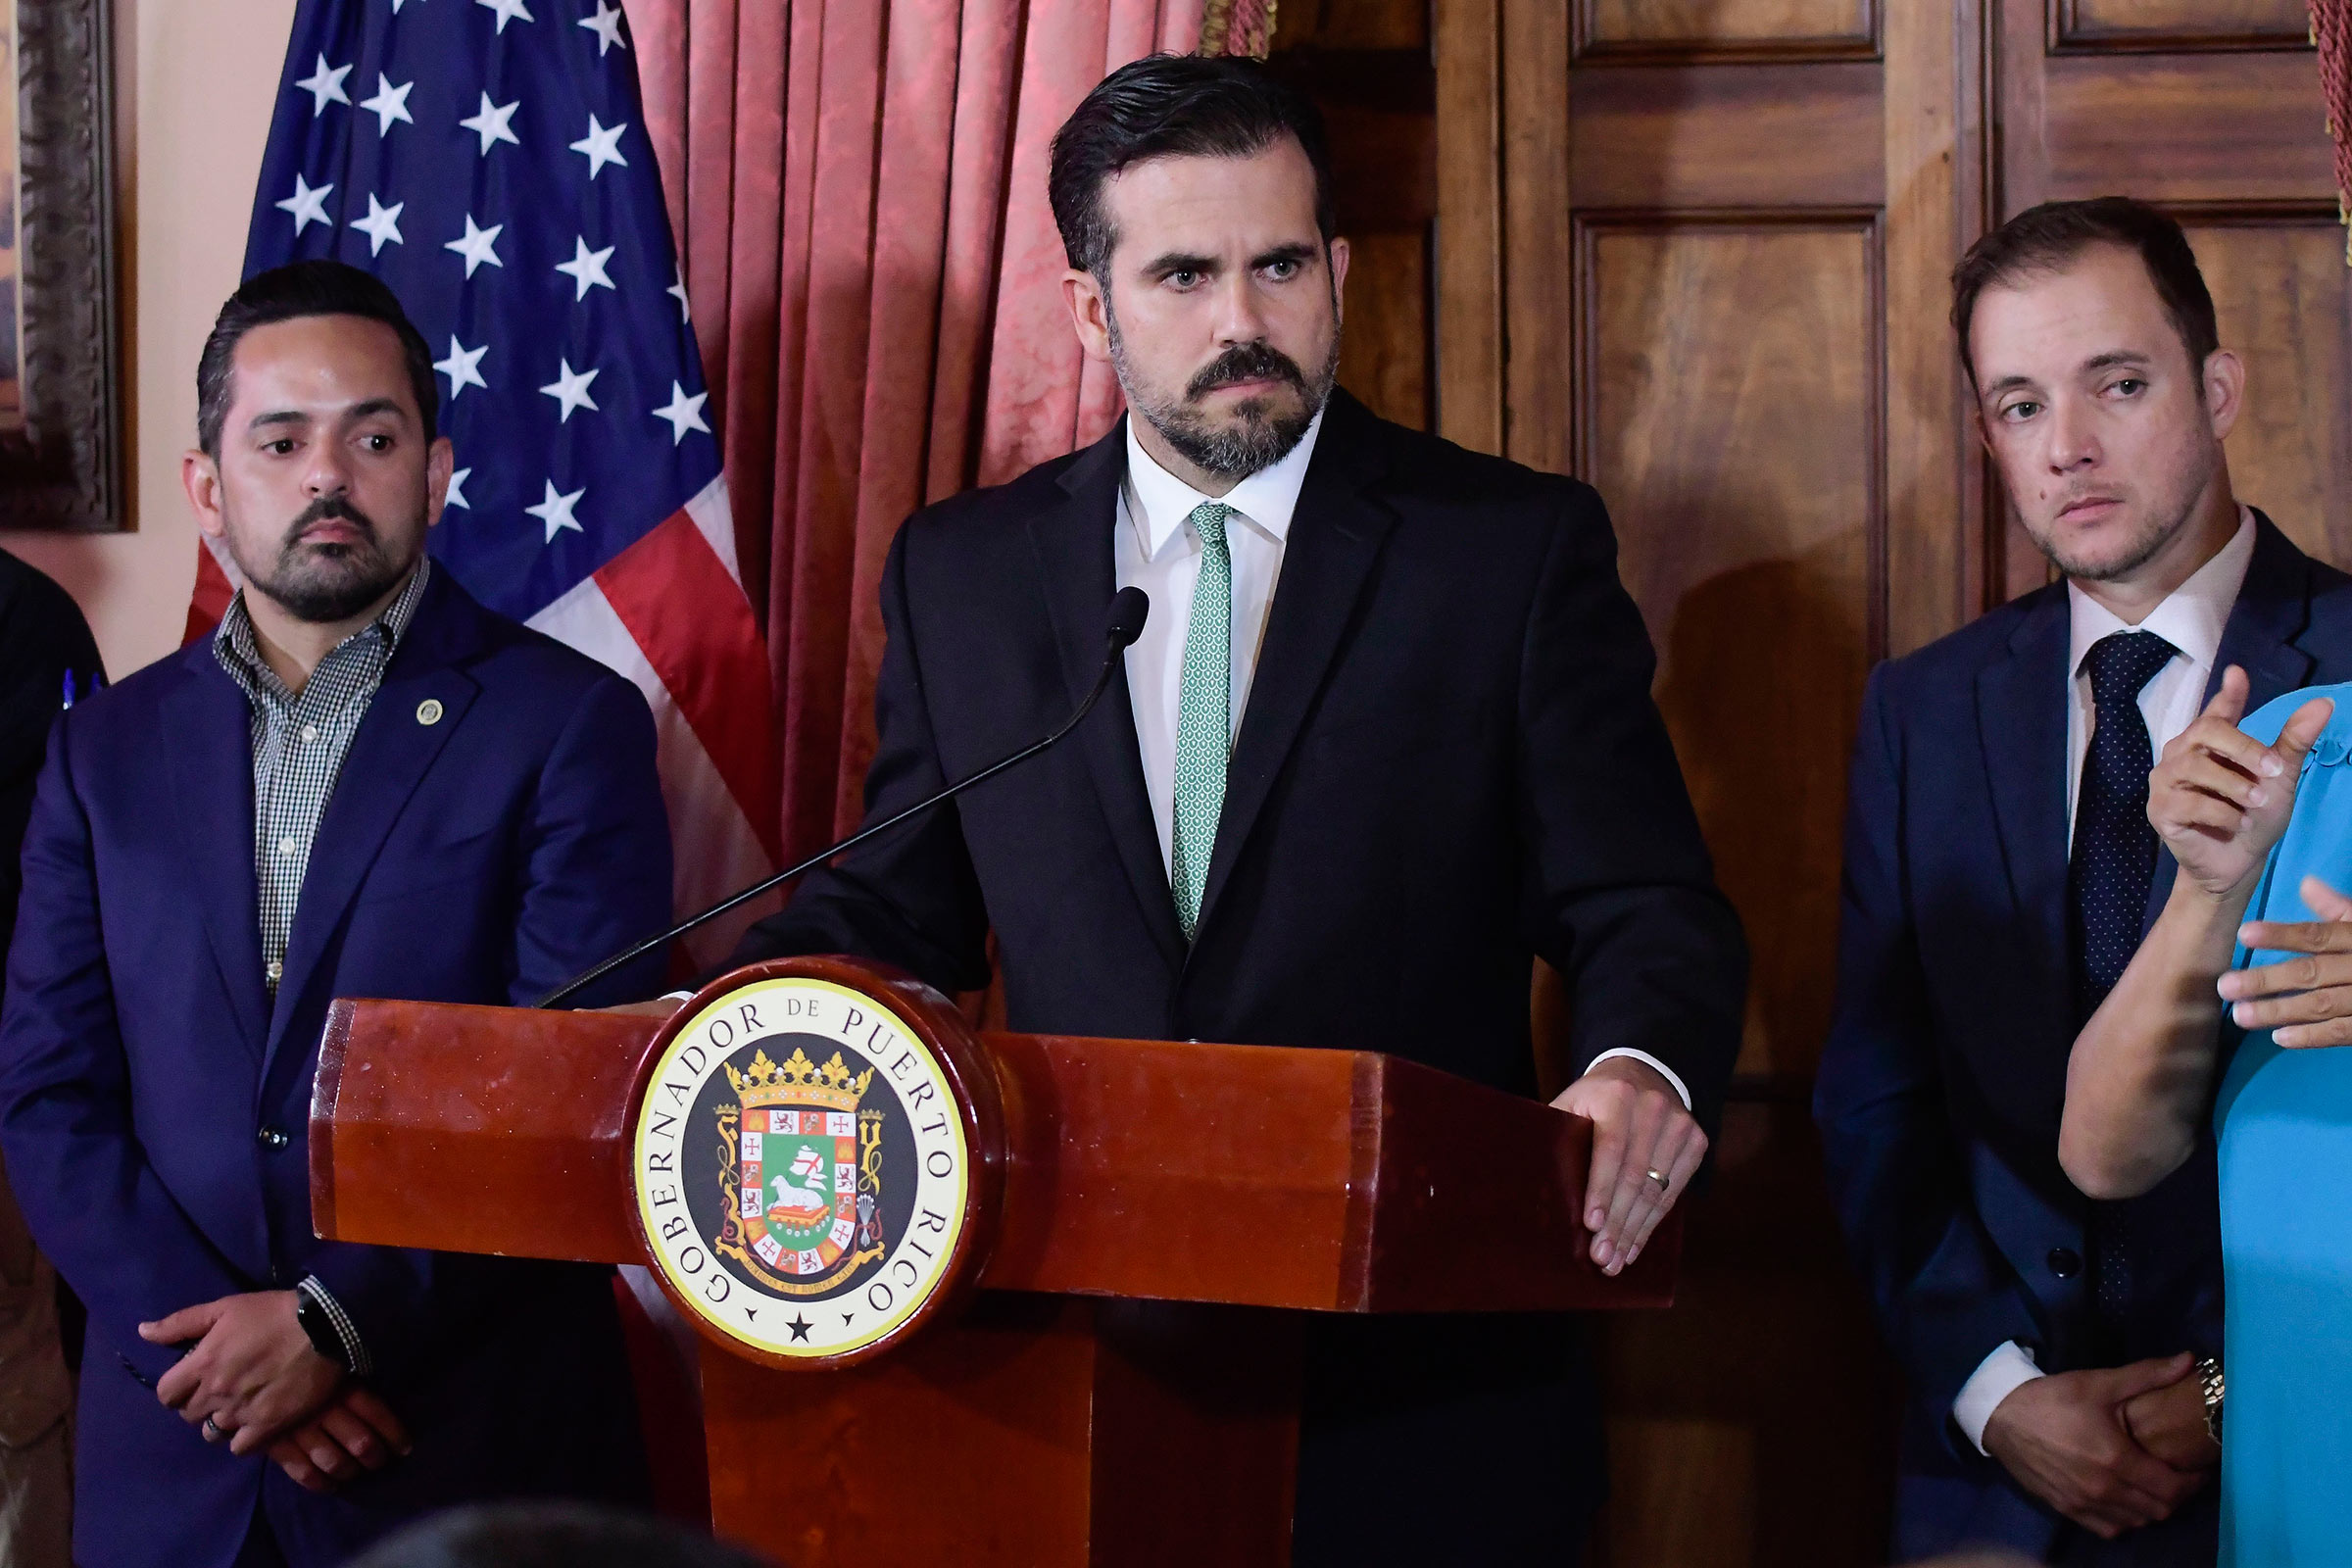 Governor Rosselló at a press conference on his administration's scandal on July 16.